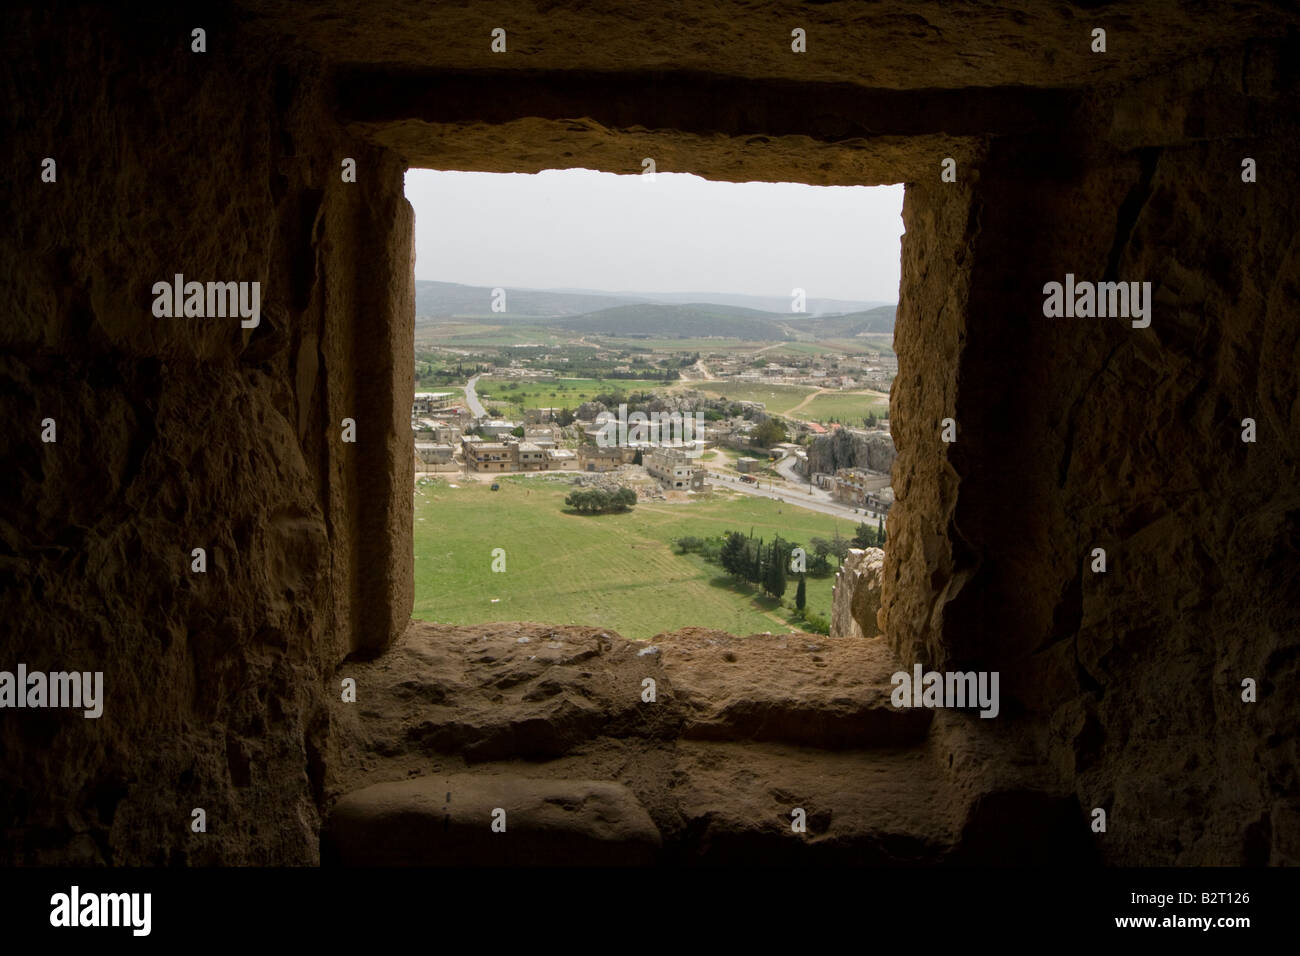 View From a Window at Qalaat Misyaf One of the Assassin Castles in Syria - Stock Image